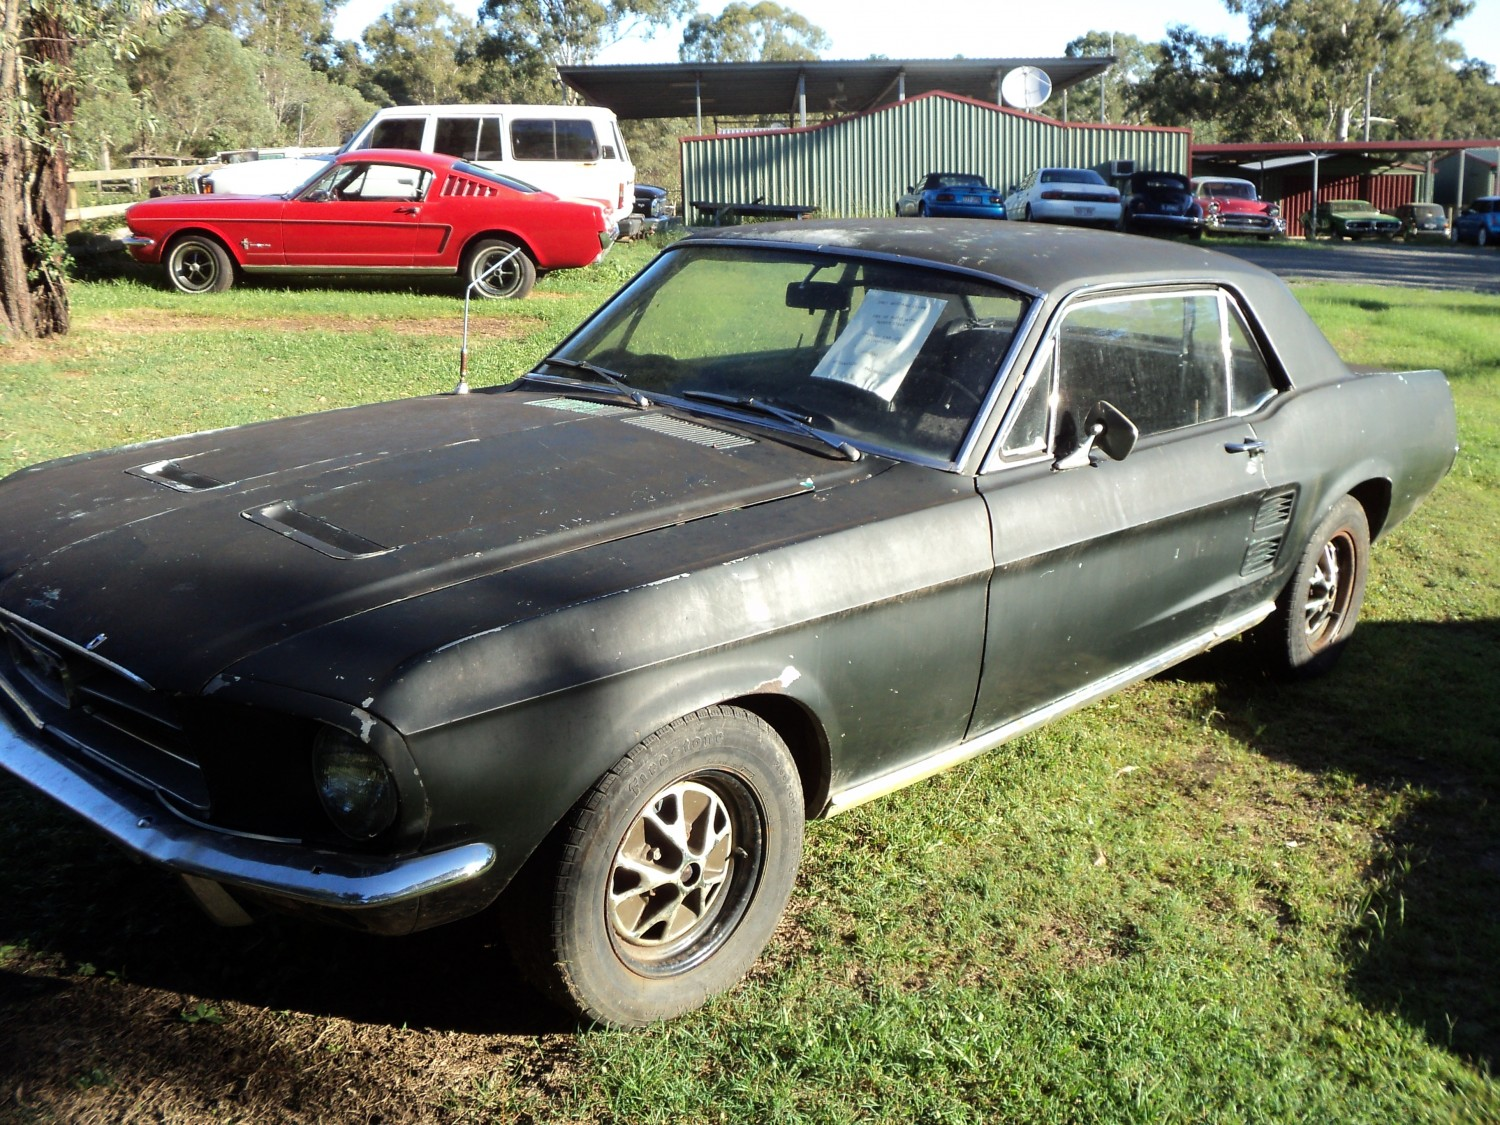 Mustang,1965,Jrs1965,Ford,289/V8